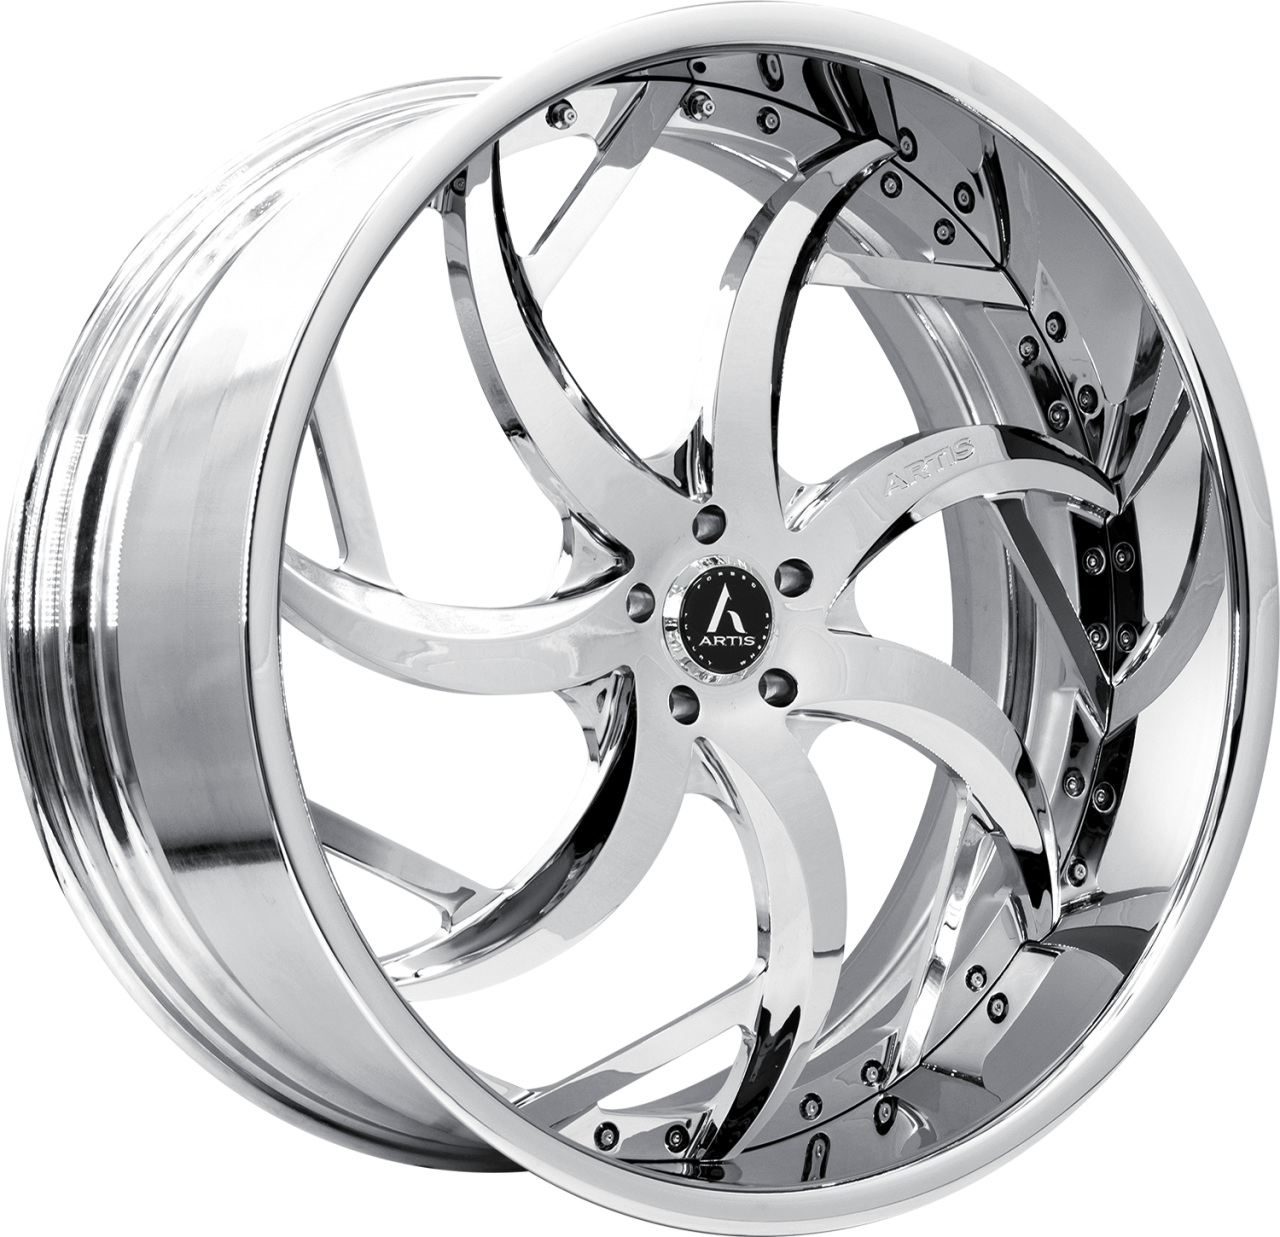 Artis Forged Sin City wheel with Chrome finish